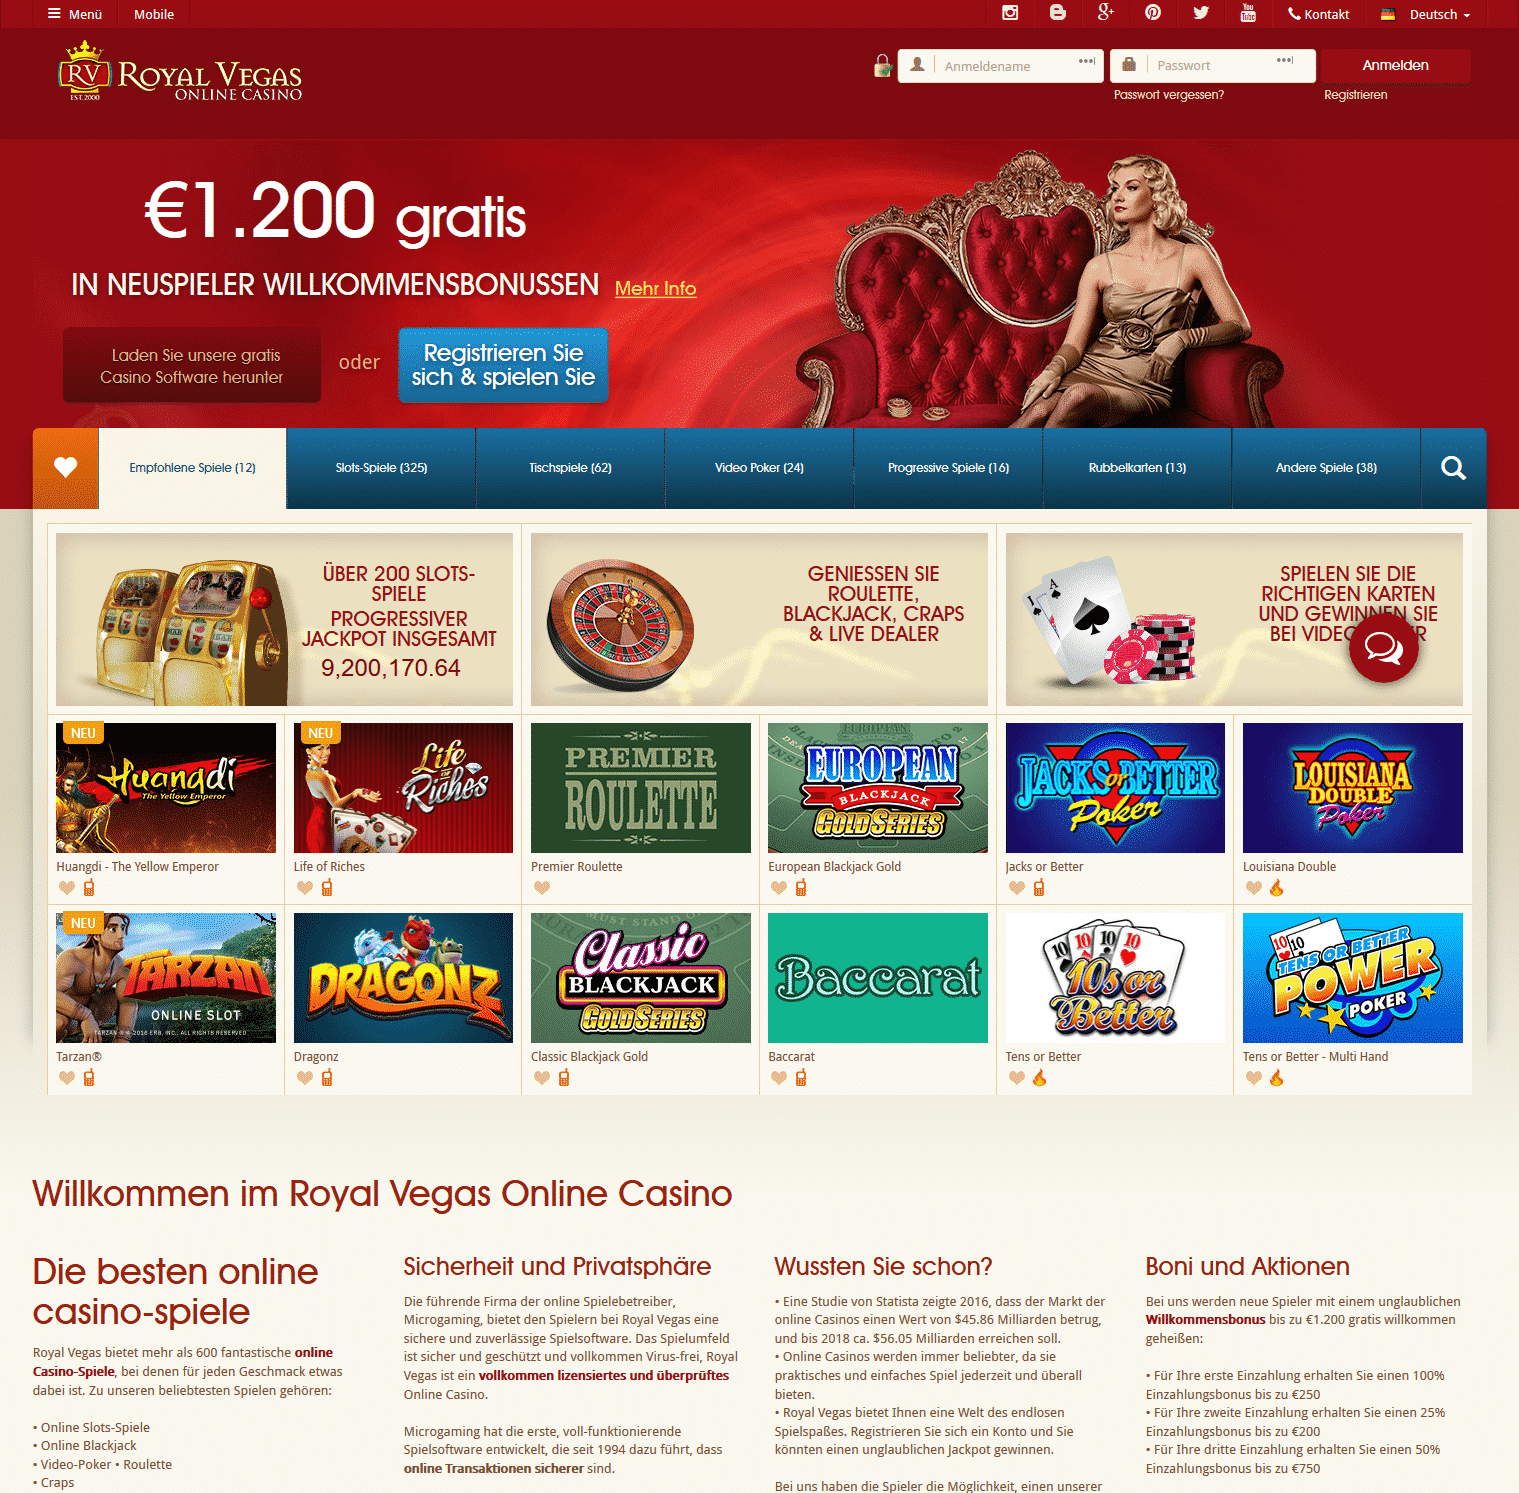 royal vegas online casino download sevens spielen